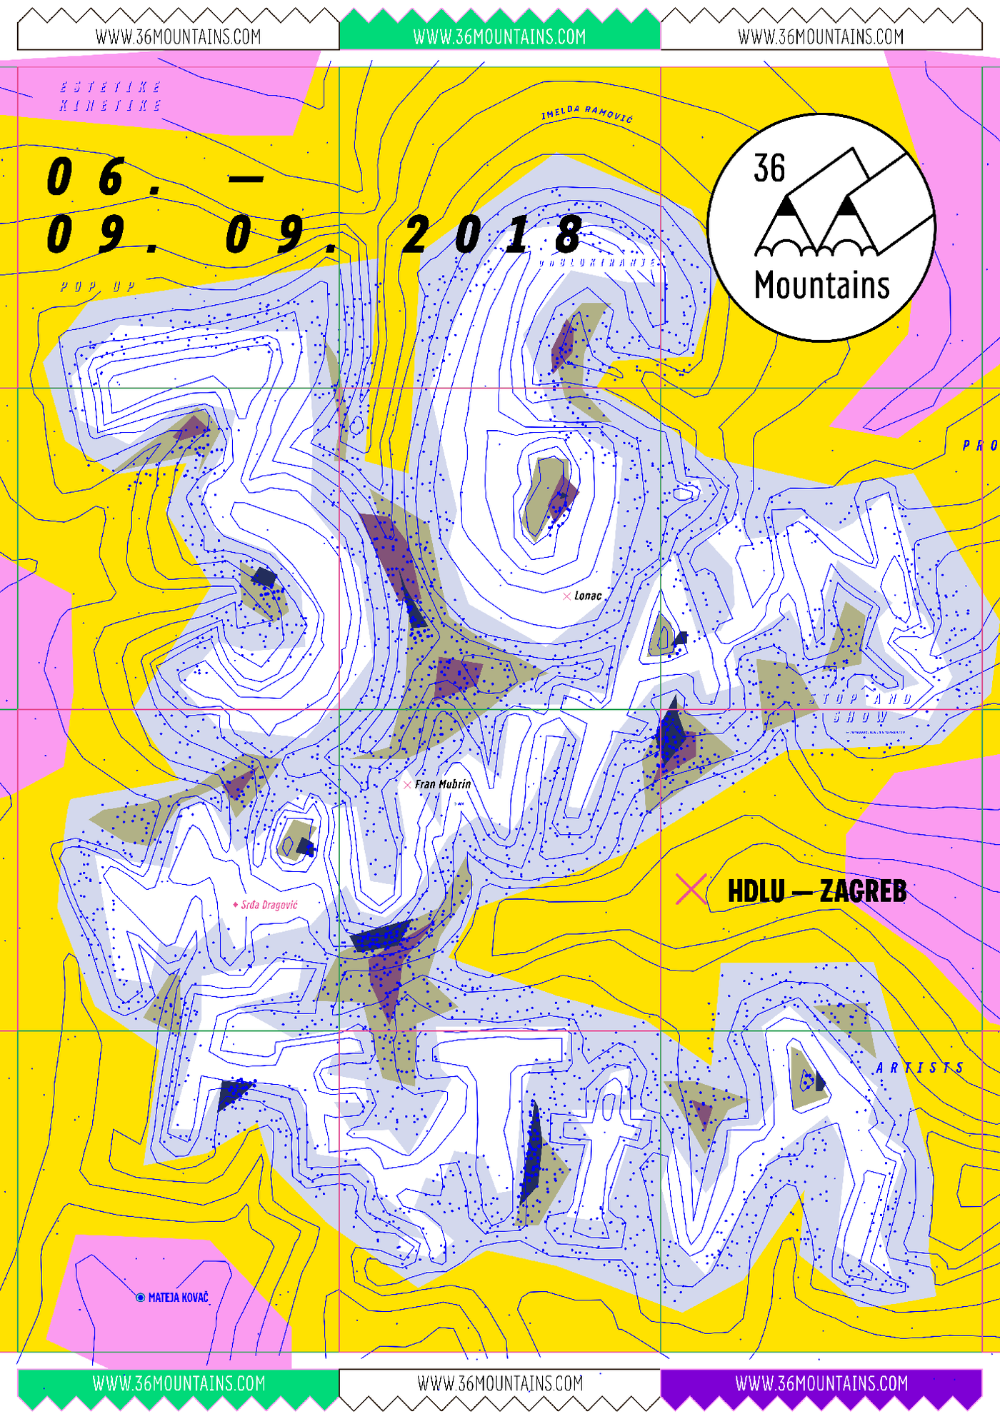 36 Mountains Fonts In Use Zagreb Illustration Graphic